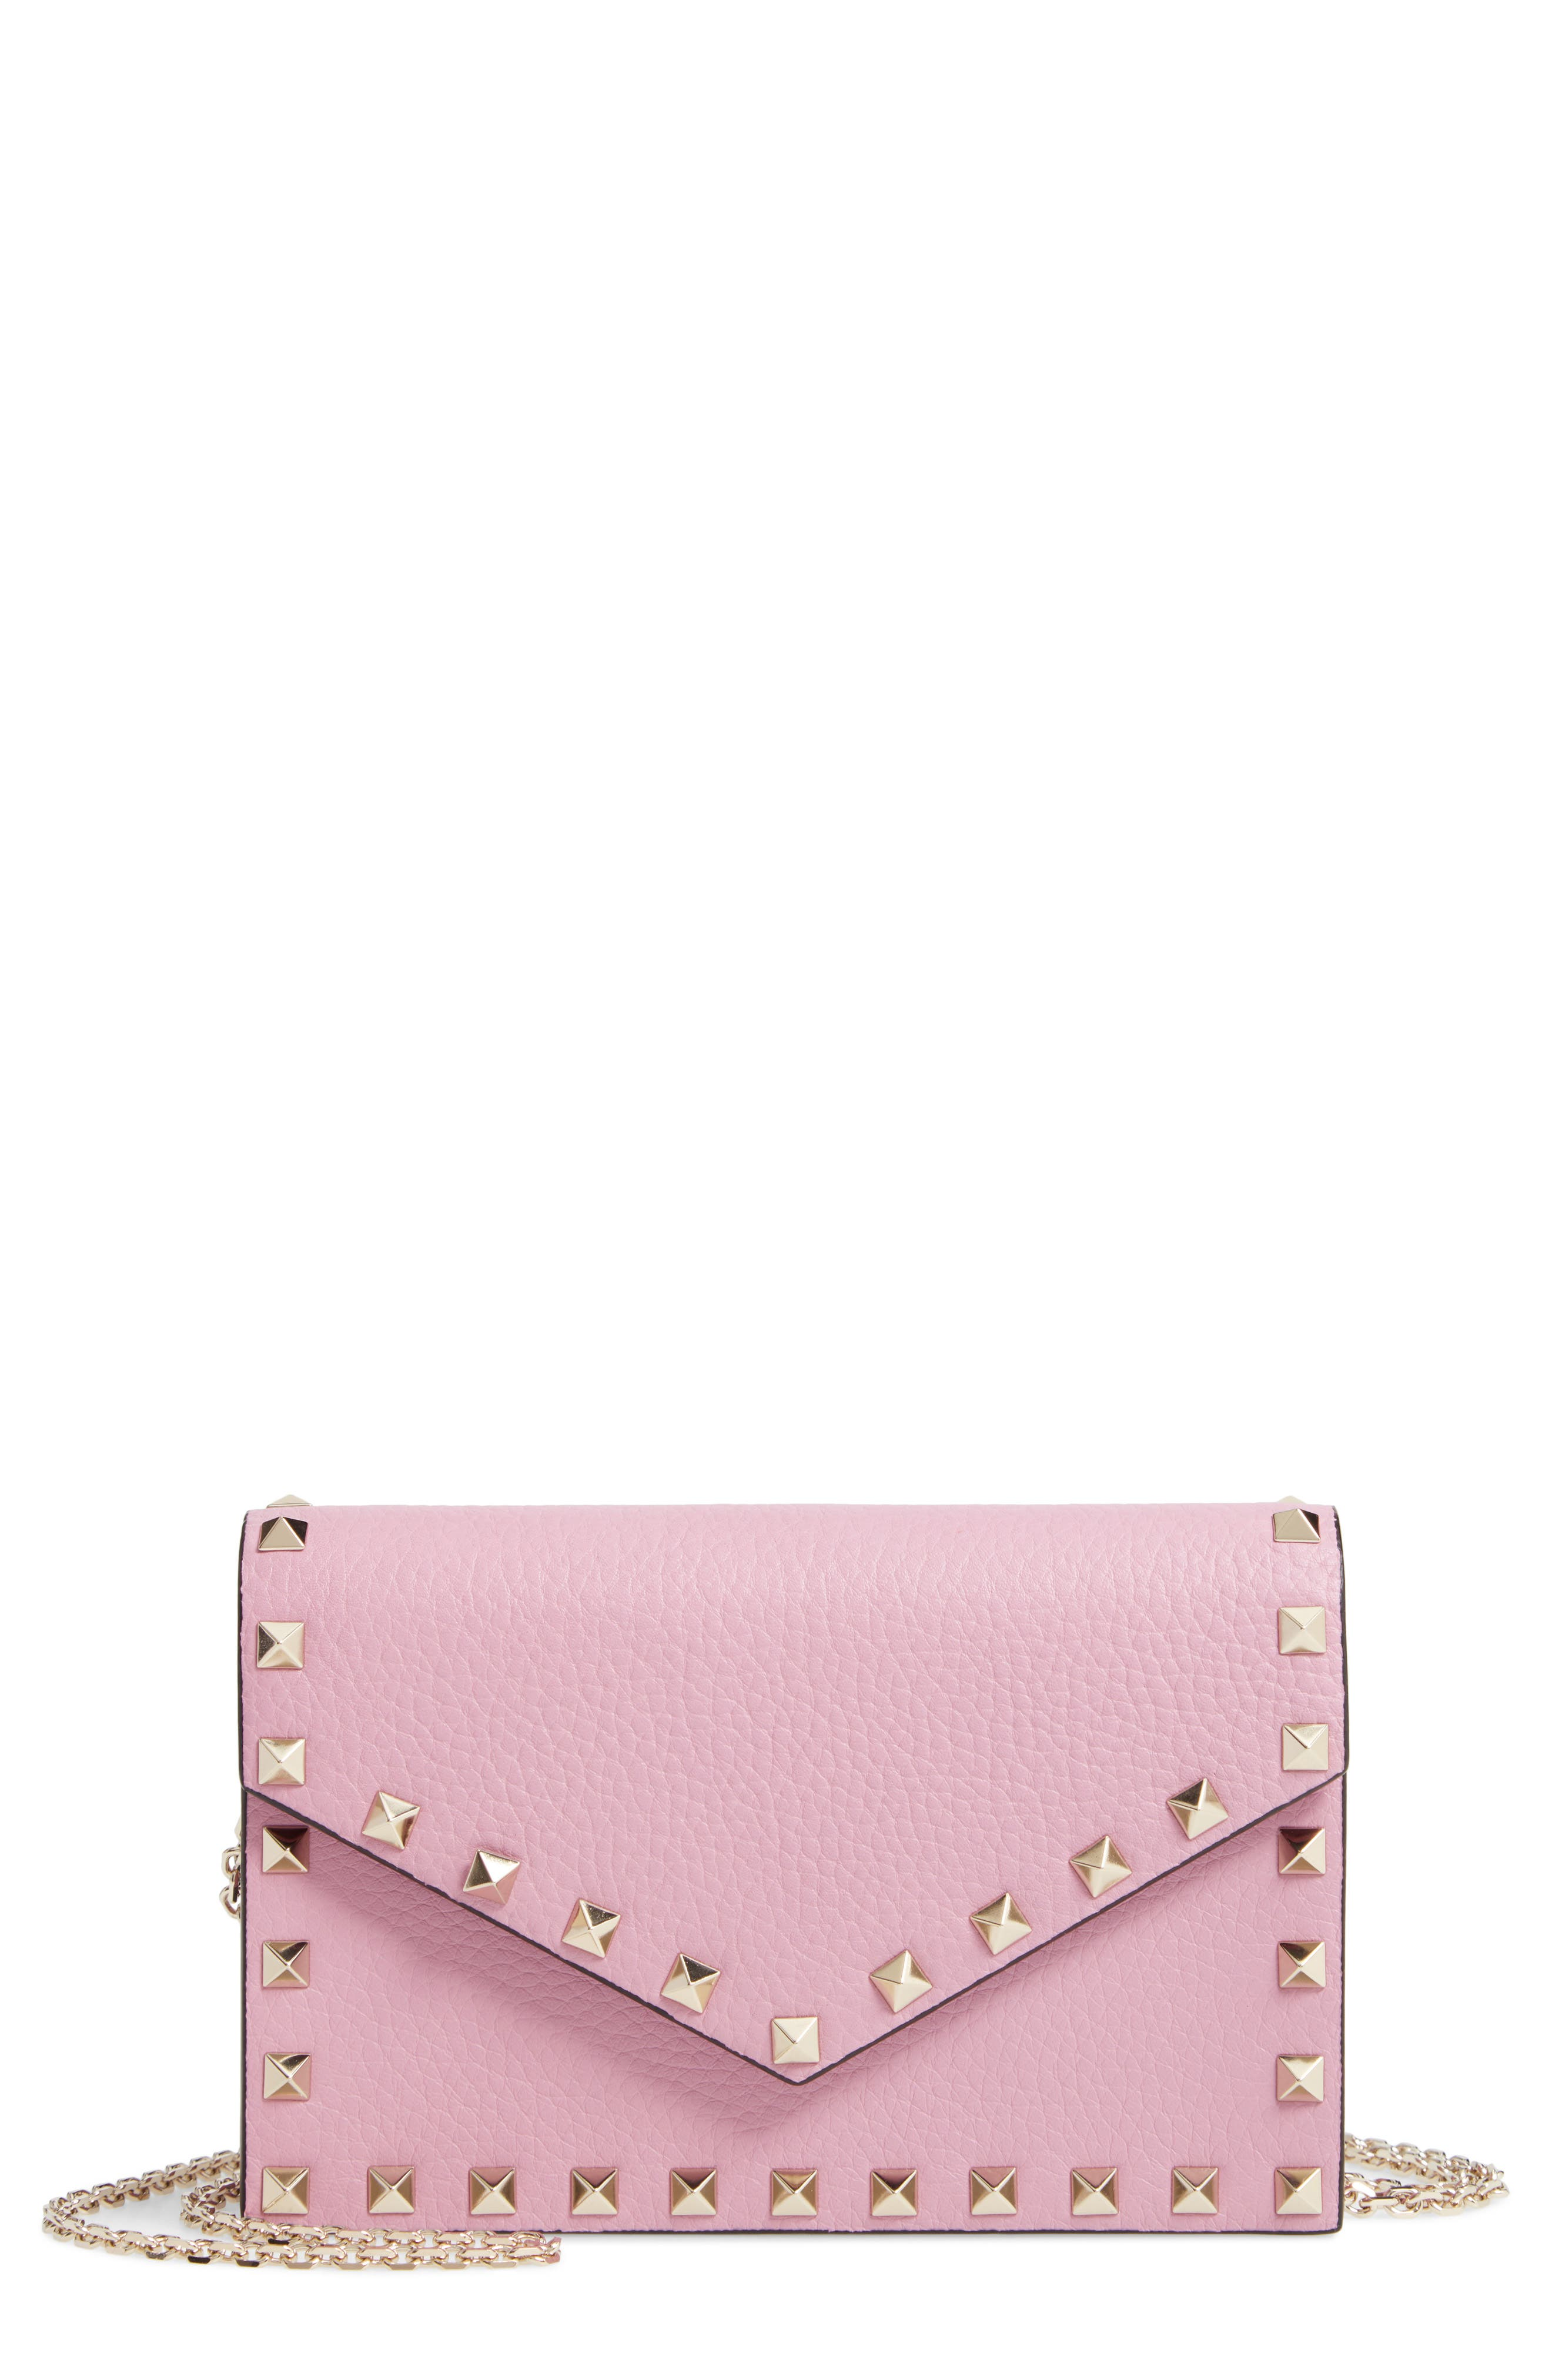 VALENTINO GARAVANI Rockstud Calfskin Leather Envelope Pouch, Main, color, GIACINTO